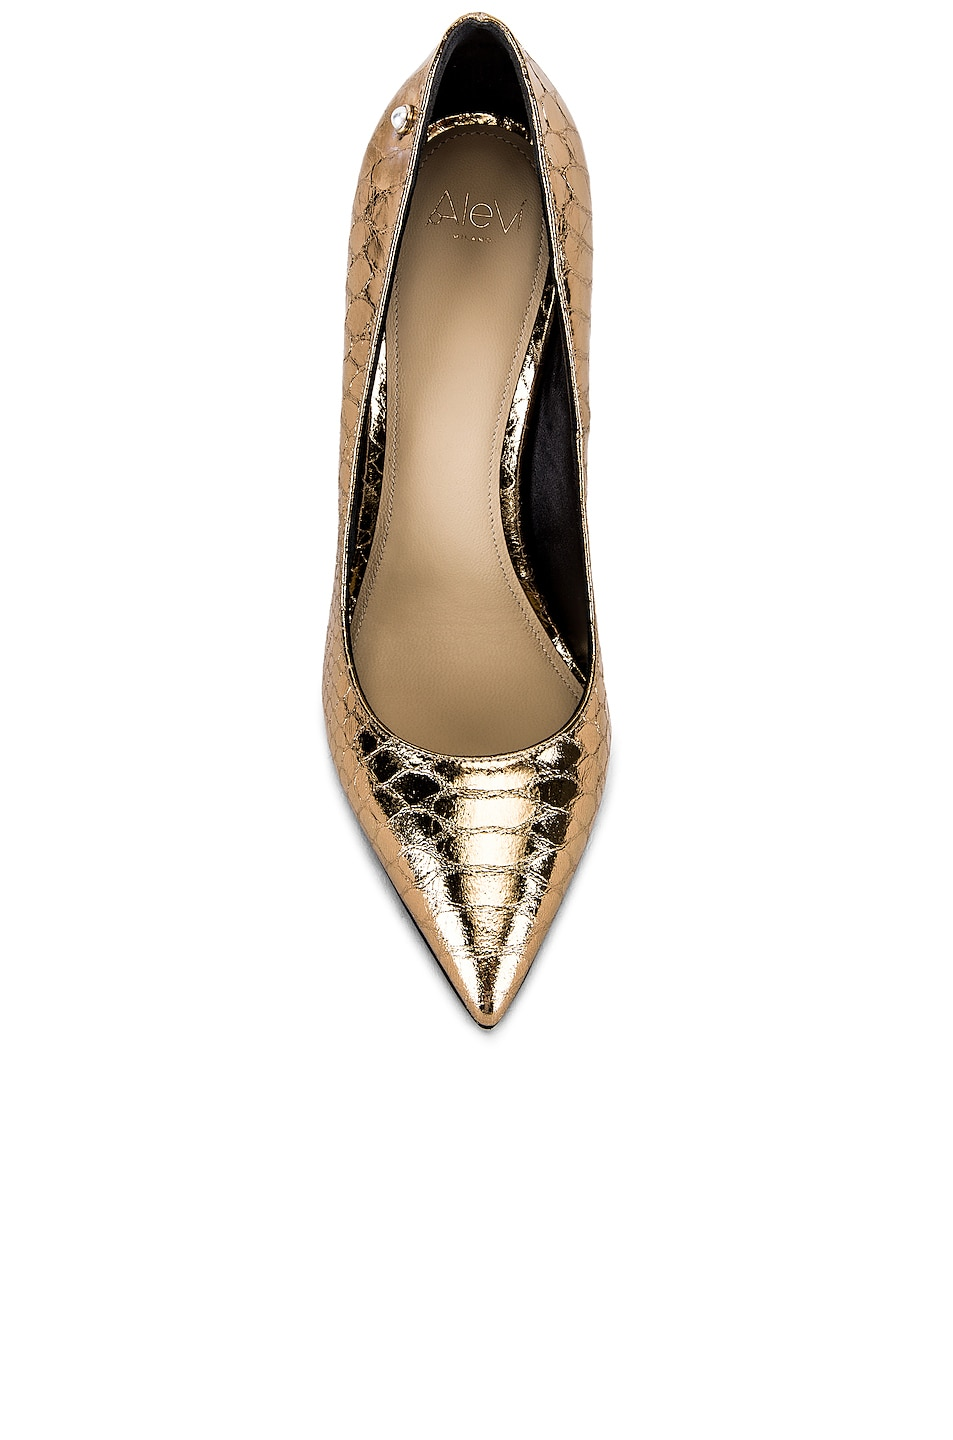 Image 4 of ALEVI Milano Alevi Carrie Pump in Gold Snake